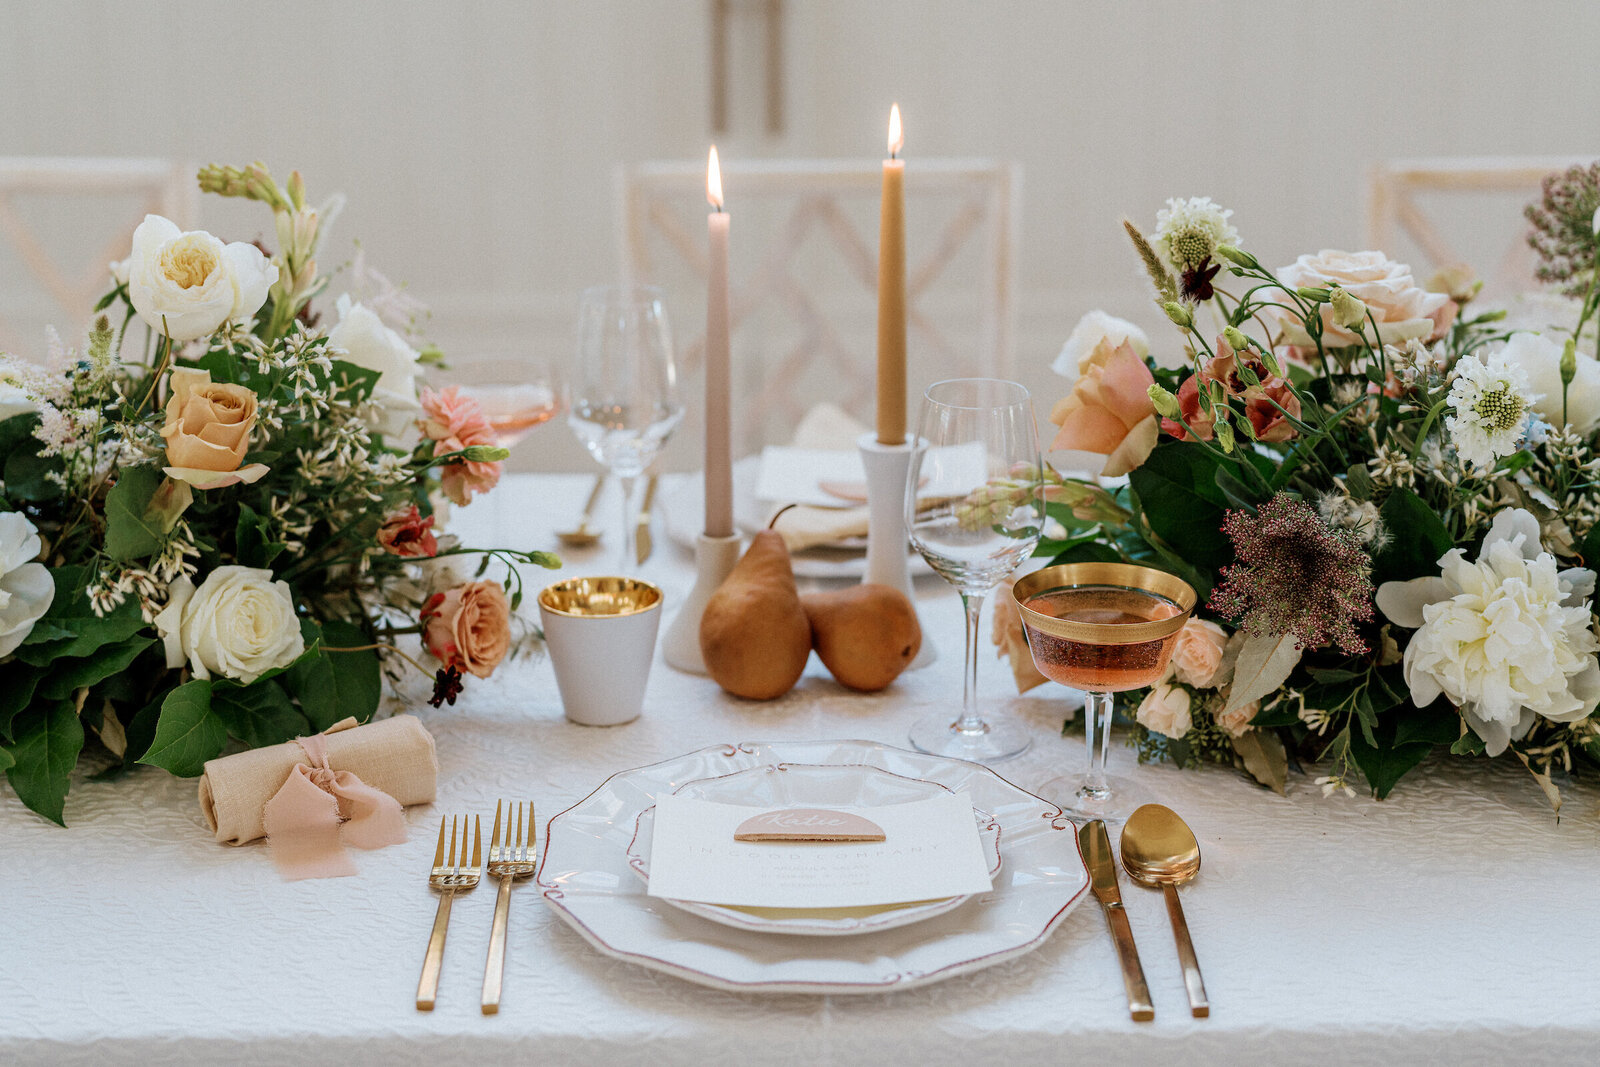 Table Top by Kast Events, Krystal Kast Photography, Wild Flora Farm, Carolina Grove, American Party Tables, Mason Dixon Design